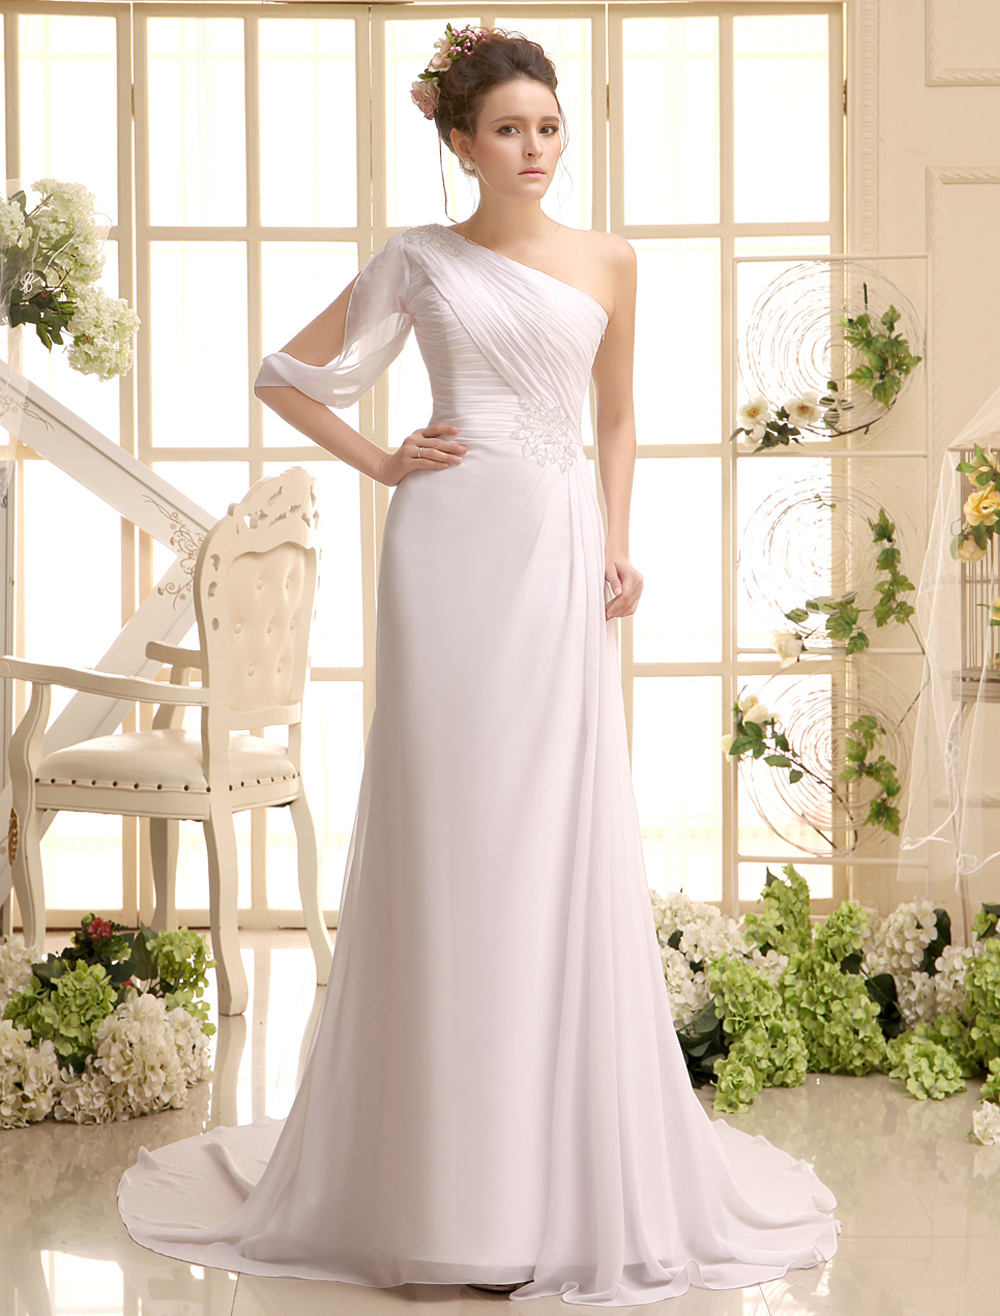 Ivory A-line Ruched Bridal Wedding Gown with One-Shoulder